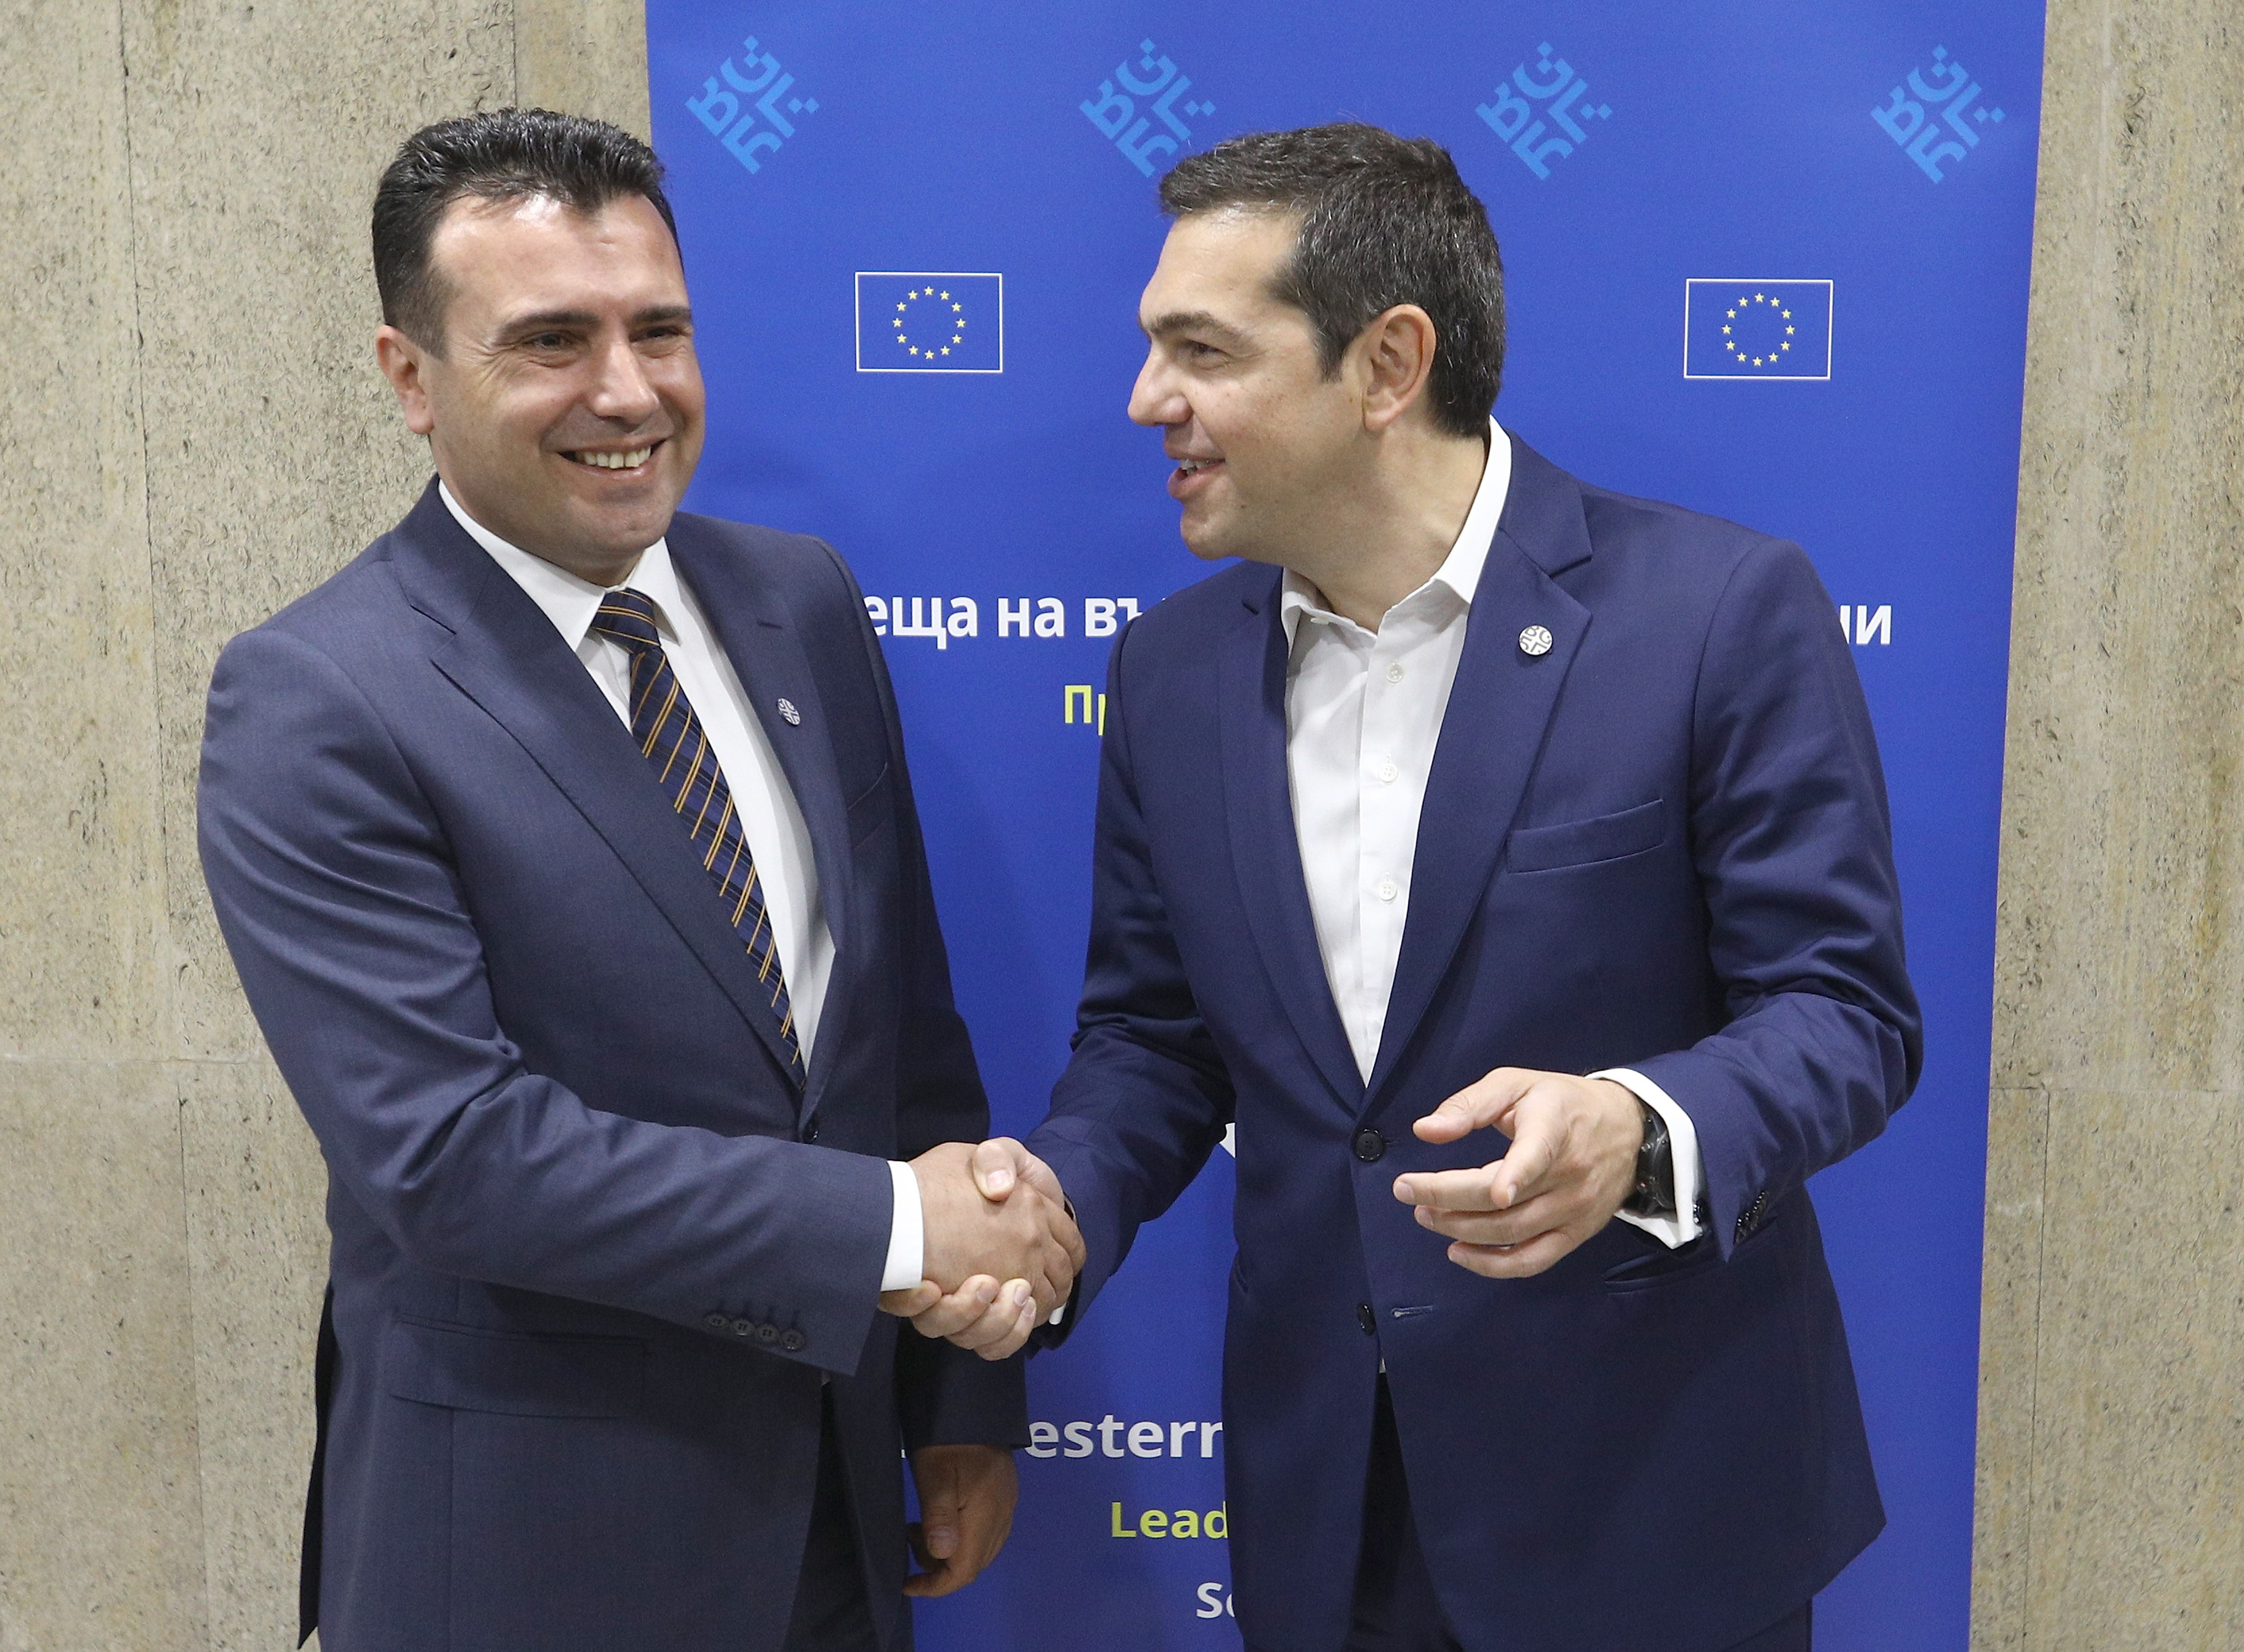 Greek Prime Minister Alexis Tsipras meets with Macedonian Prime Minister Zoran Zaev at the EU-Western Balkans Summit in Sofia, Bulgaria, May 17, 2018. REUTERS/Stoyan Nenov - UP1EE5H0MEVGG